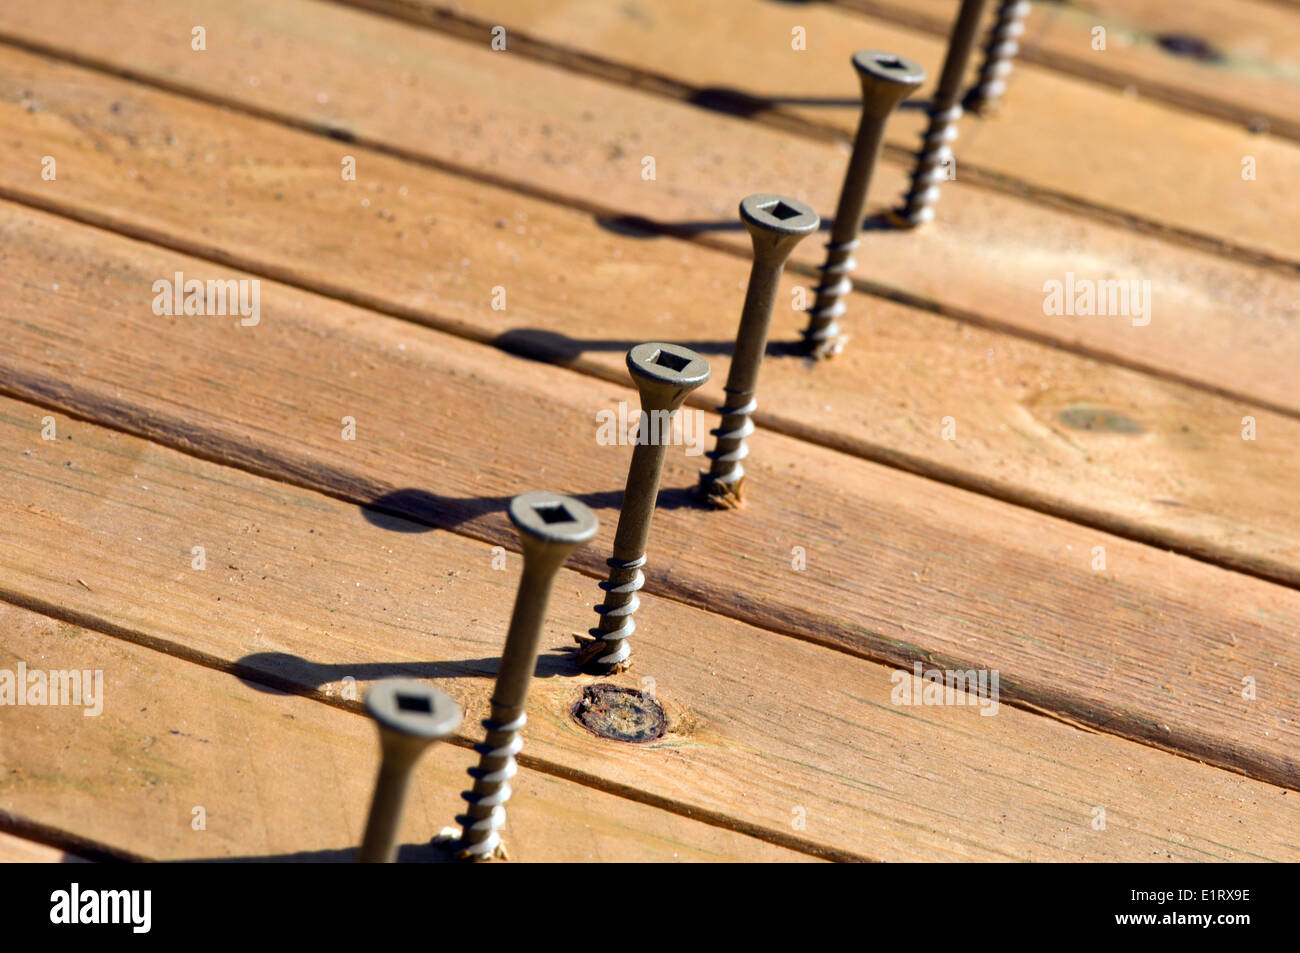 Wood screws in wood pickets - Stock Image